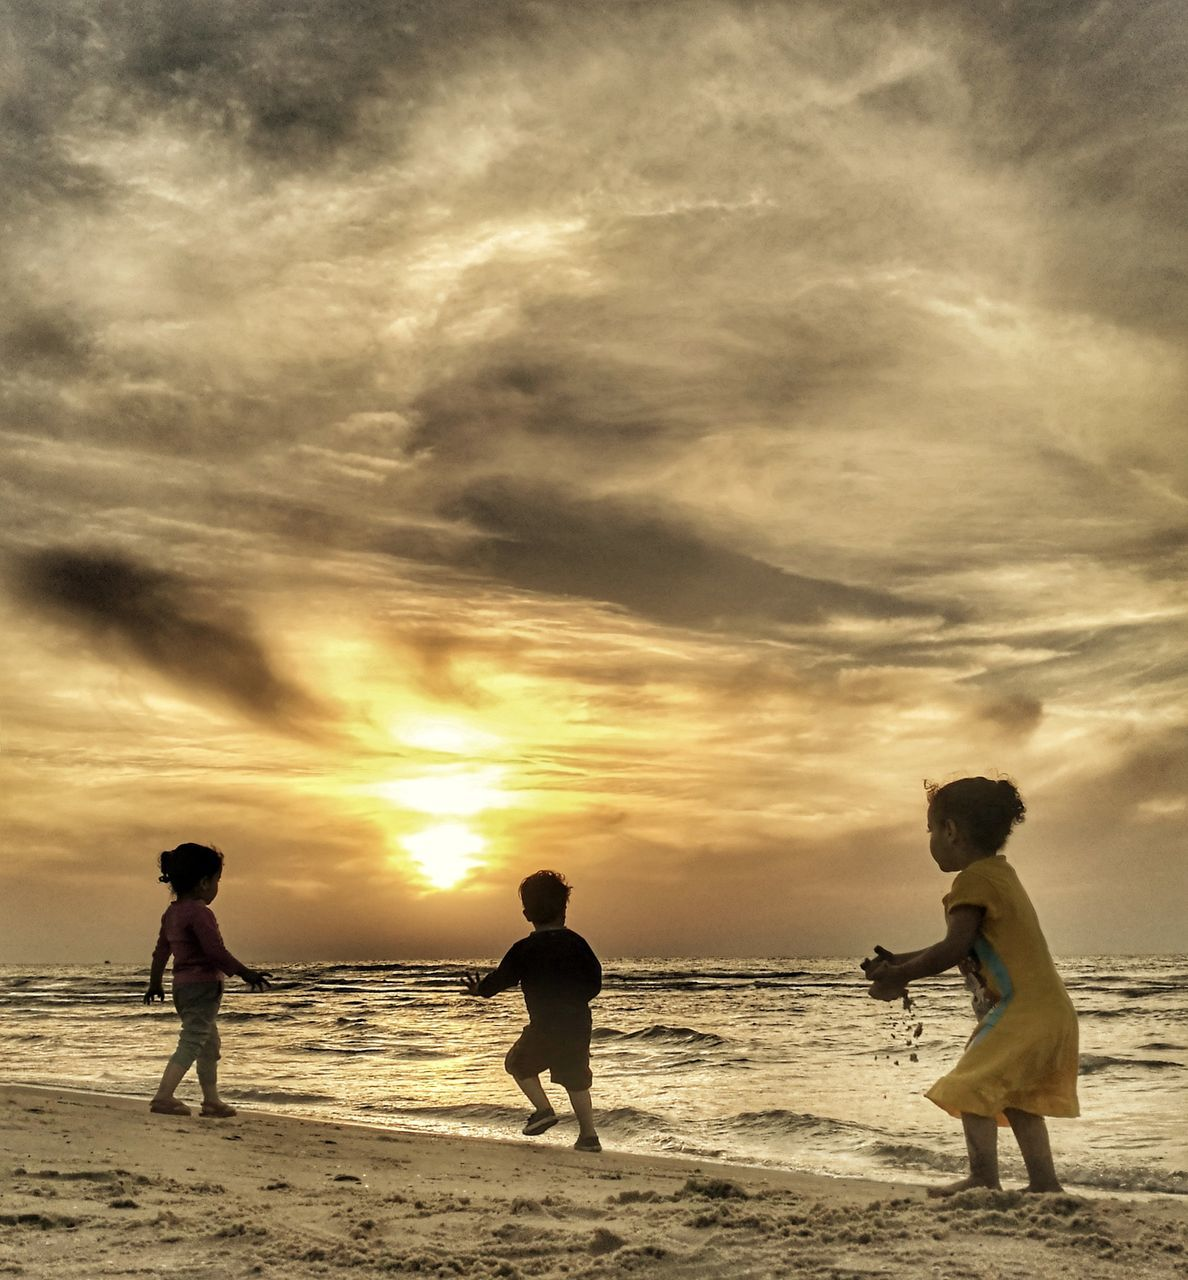 beach, sea, sunset, nature, cloud - sky, shore, sky, beauty in nature, scenics, horizon over water, water, vacations, real people, leisure activity, men, lifestyles, sand, silhouette, outdoors, boys, togetherness, standing, weekend activities, childhood, playing, wave, full length, beach volleyball, day, people